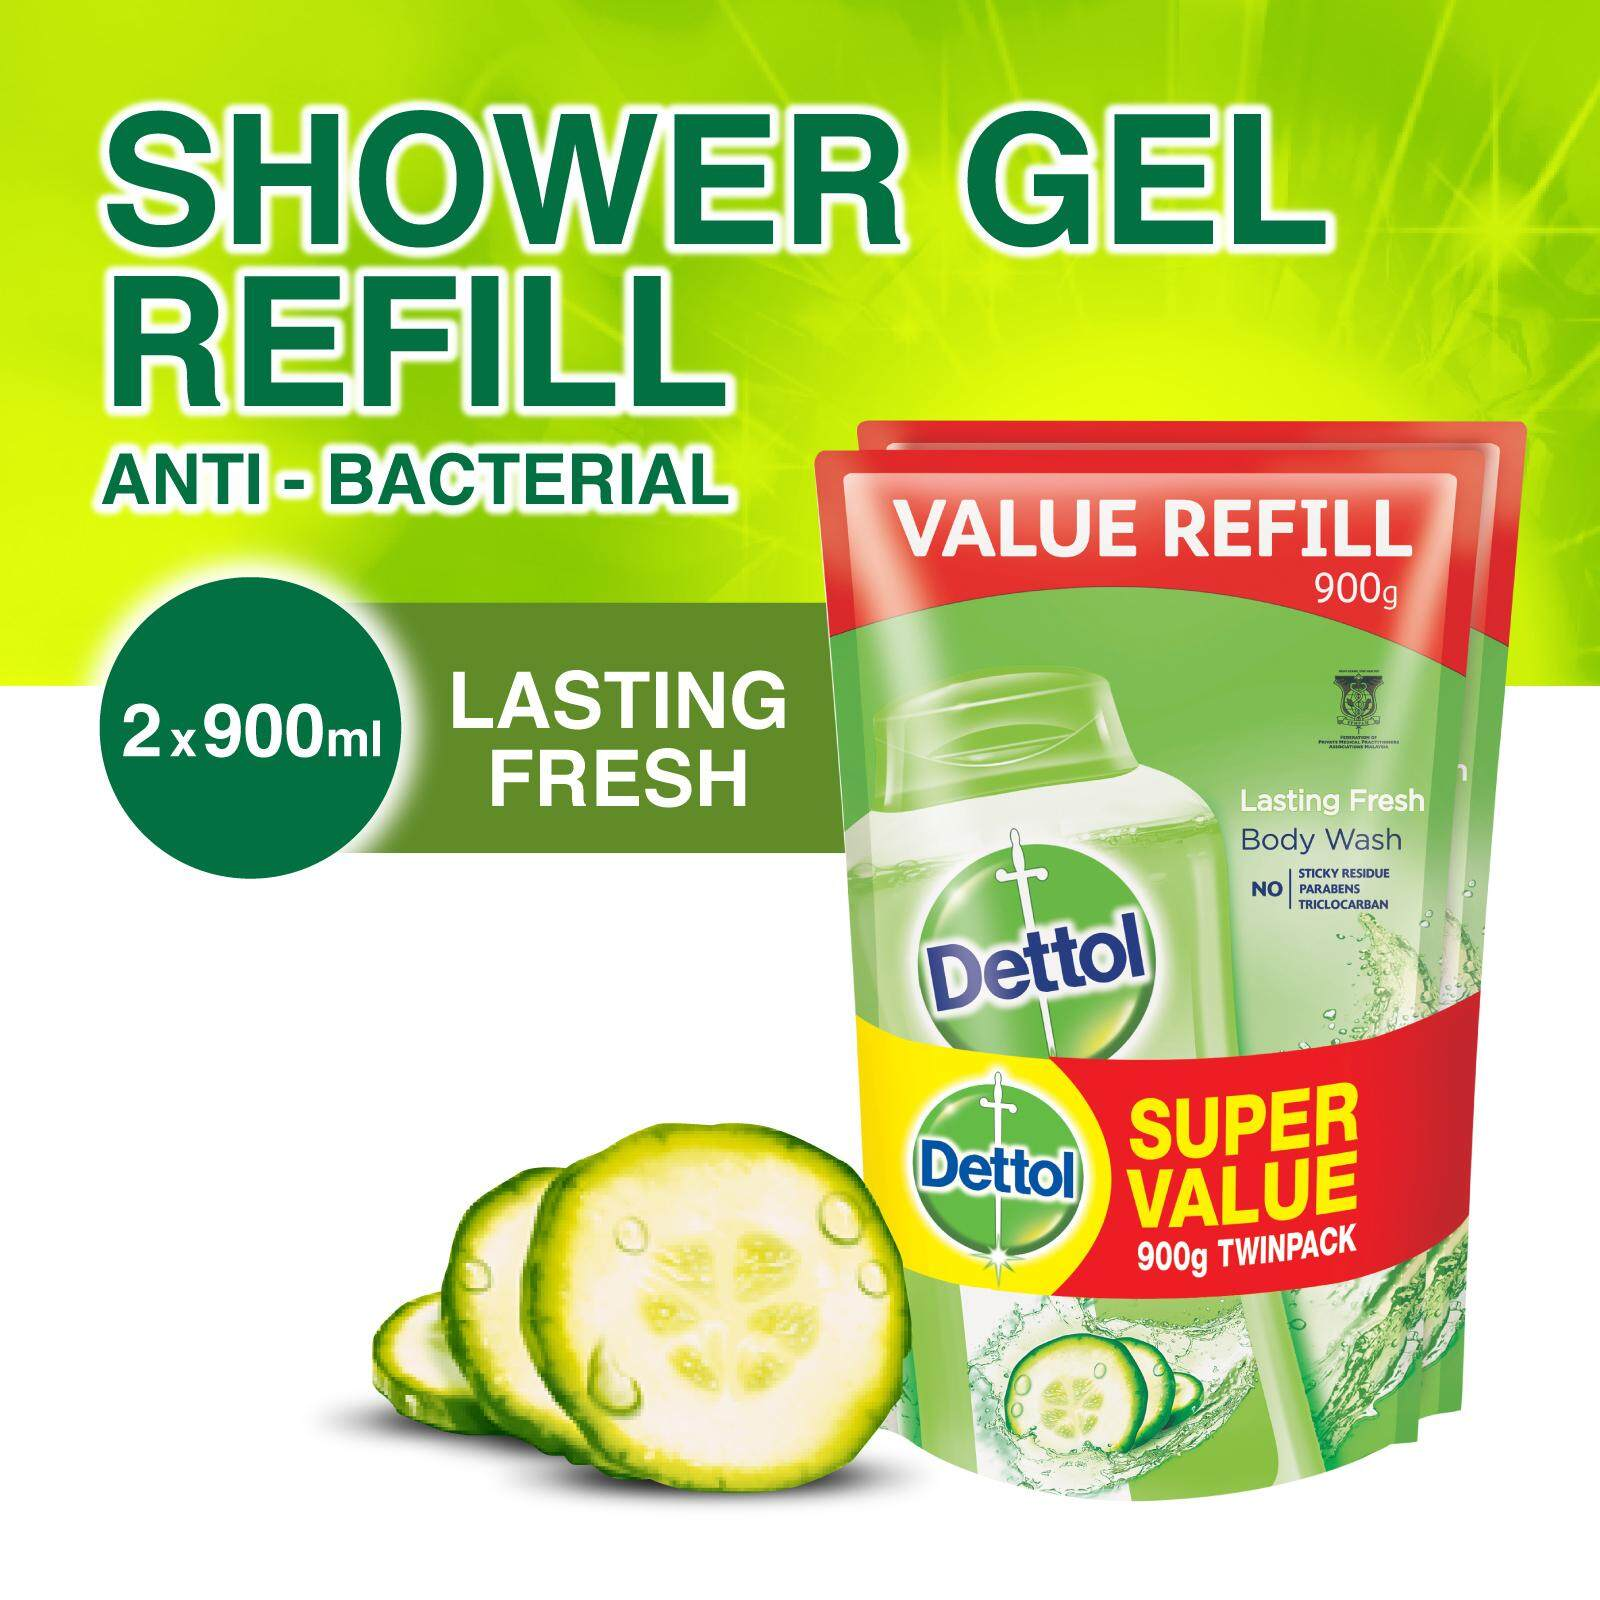 Body Soaps Shower Gels Buy At Best Citra Hand Lotion Youthful White 250 Ml Dettol Gel Lasting Fresh 900ml Refill Pouch Twin Pack